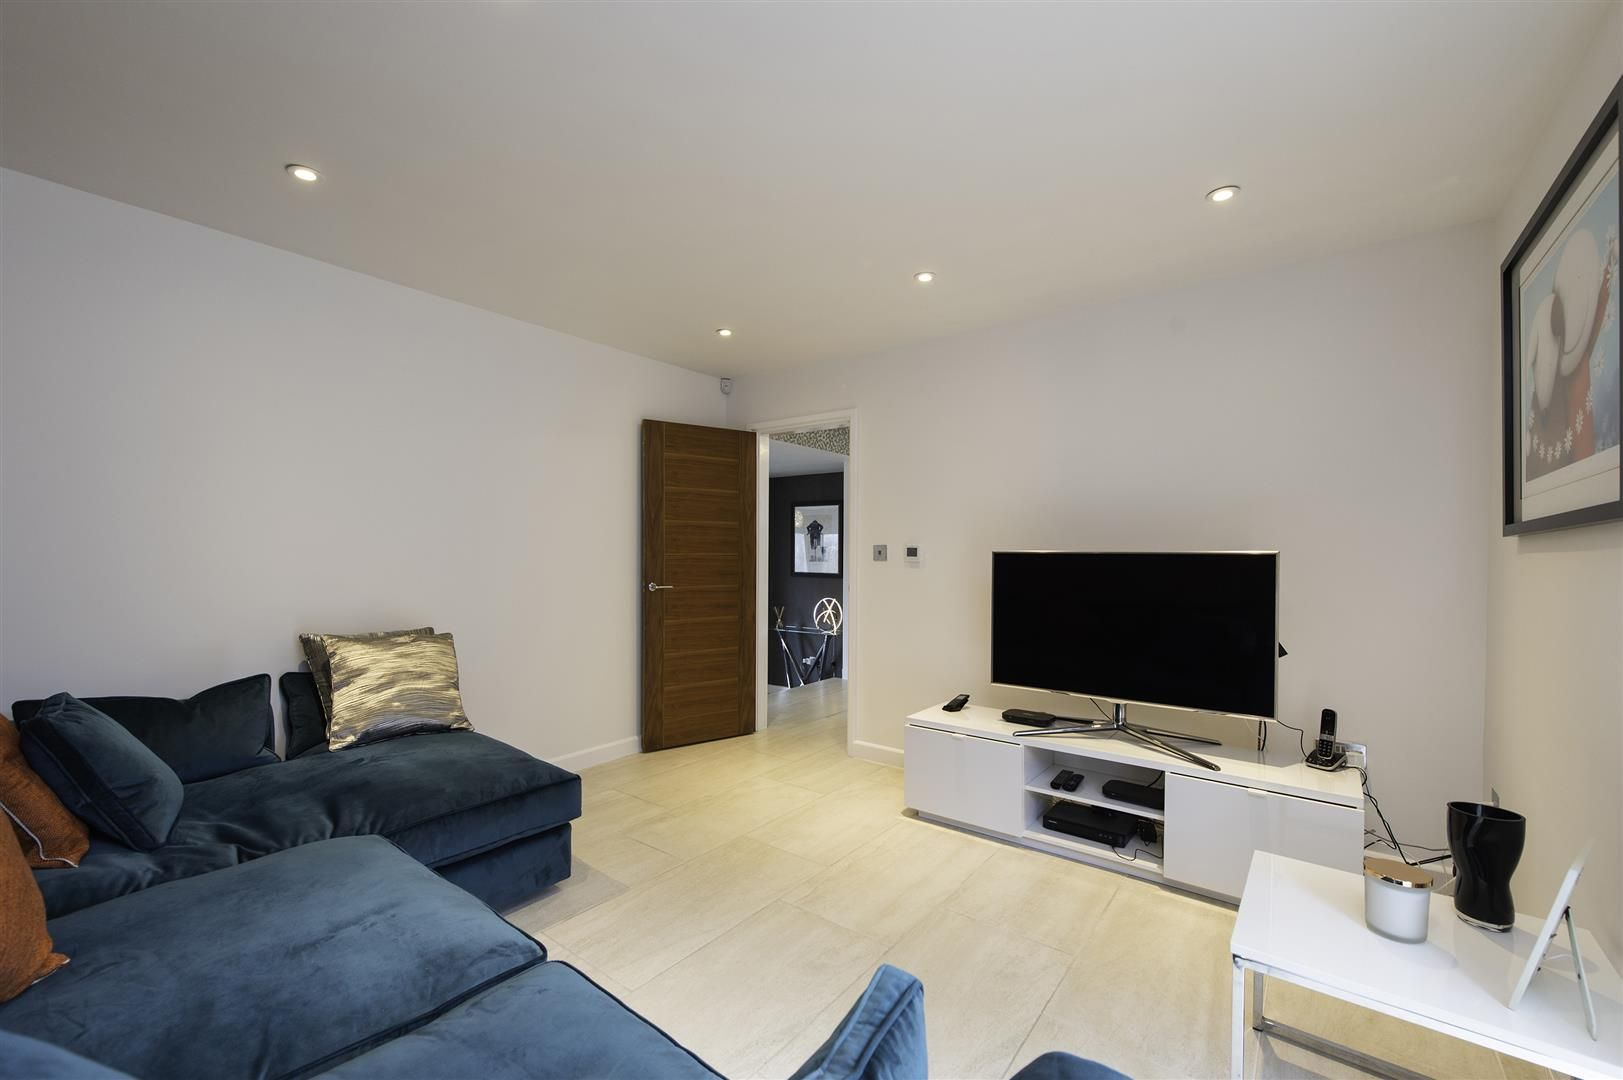 4 bed detached for sale in Stourton 8